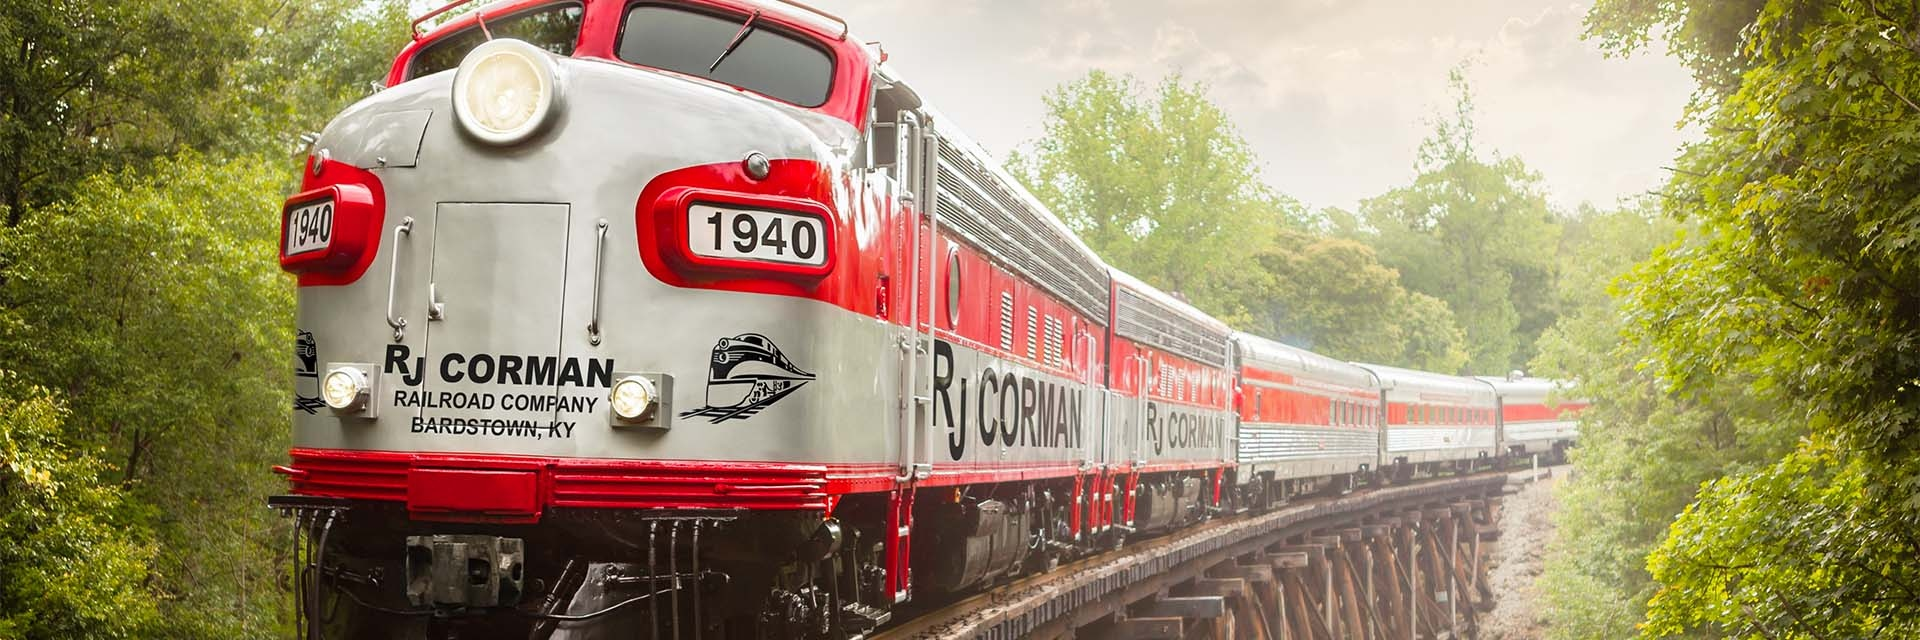 My Old Kentucky Dinner Train | R  J  Corman Railroad Group